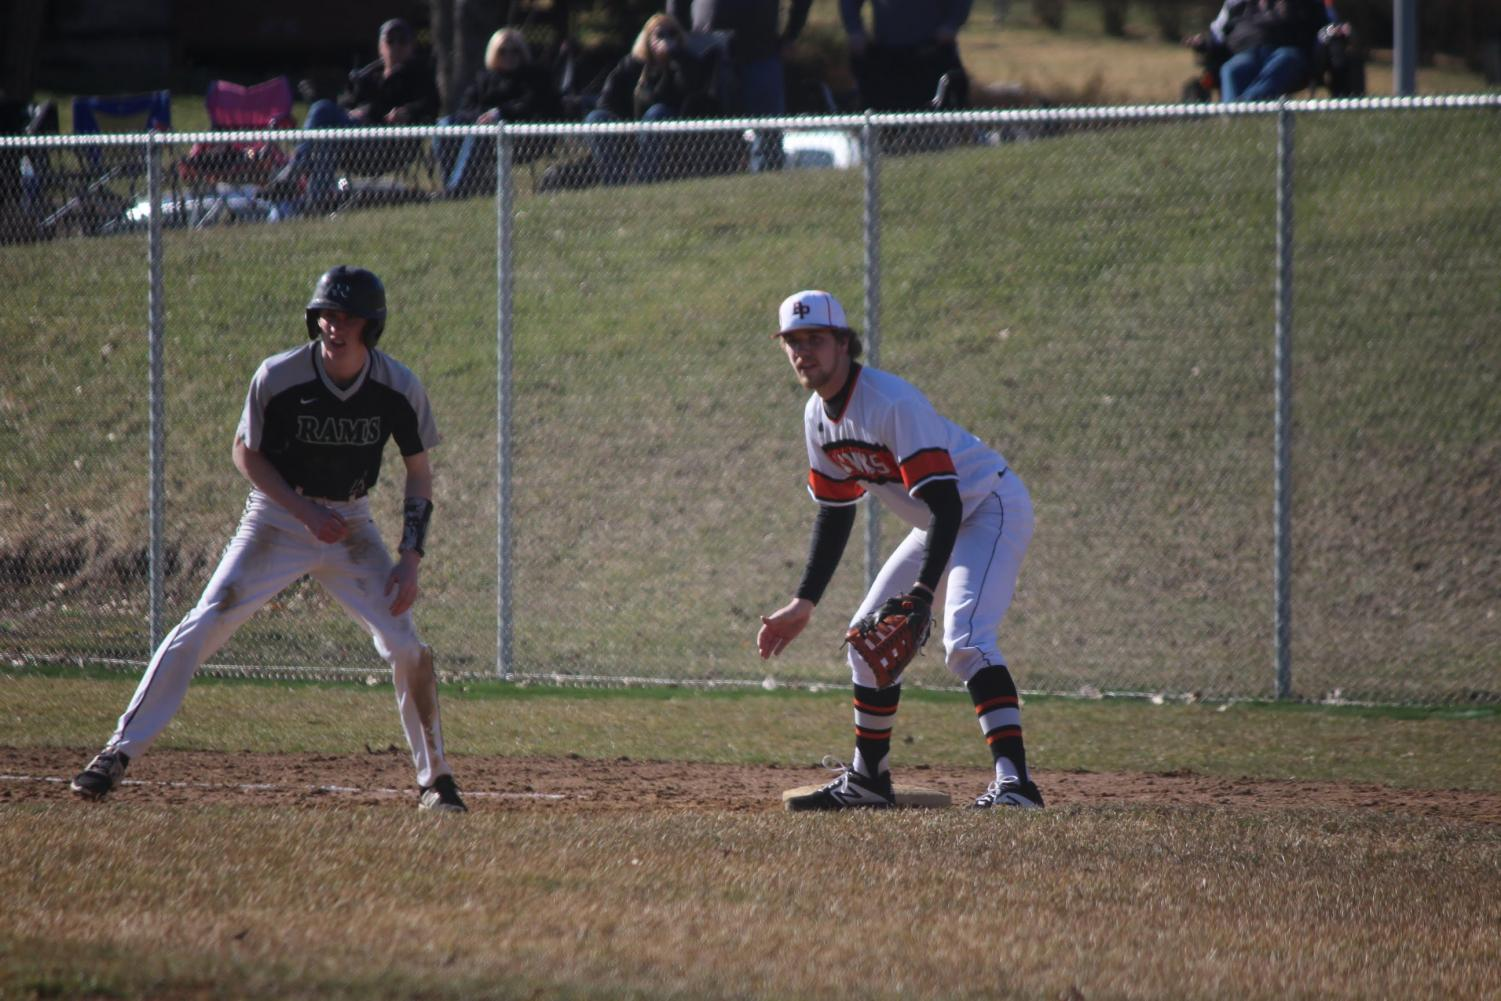 Cooper Shoemaker prepares to make a play at first base during the Hawks' game vs. Pine Richland on March 27.